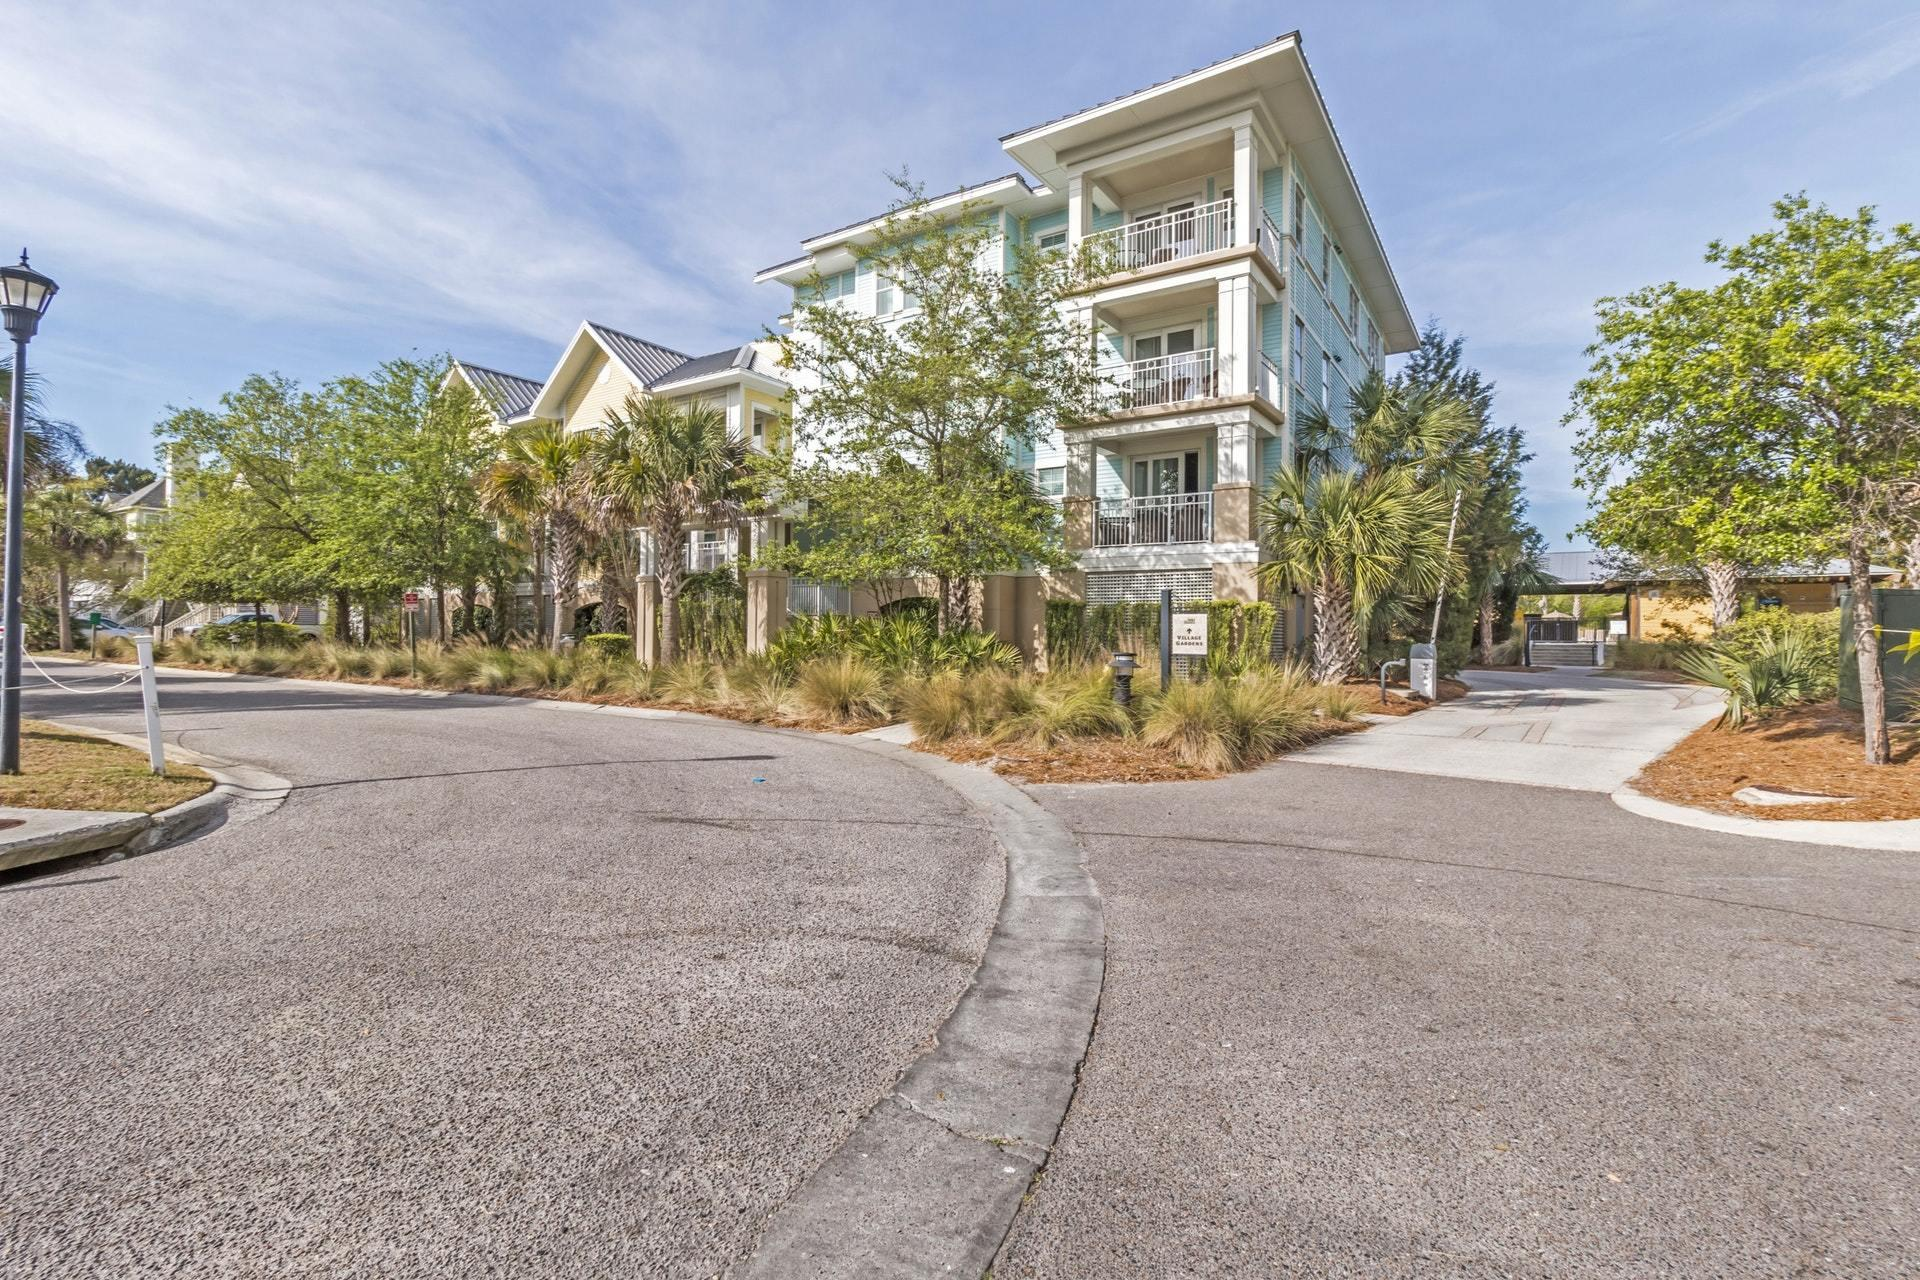 Wild Dunes Homes For Sale - 5800 Palmetto Drive, Isle of Palms, SC - 2